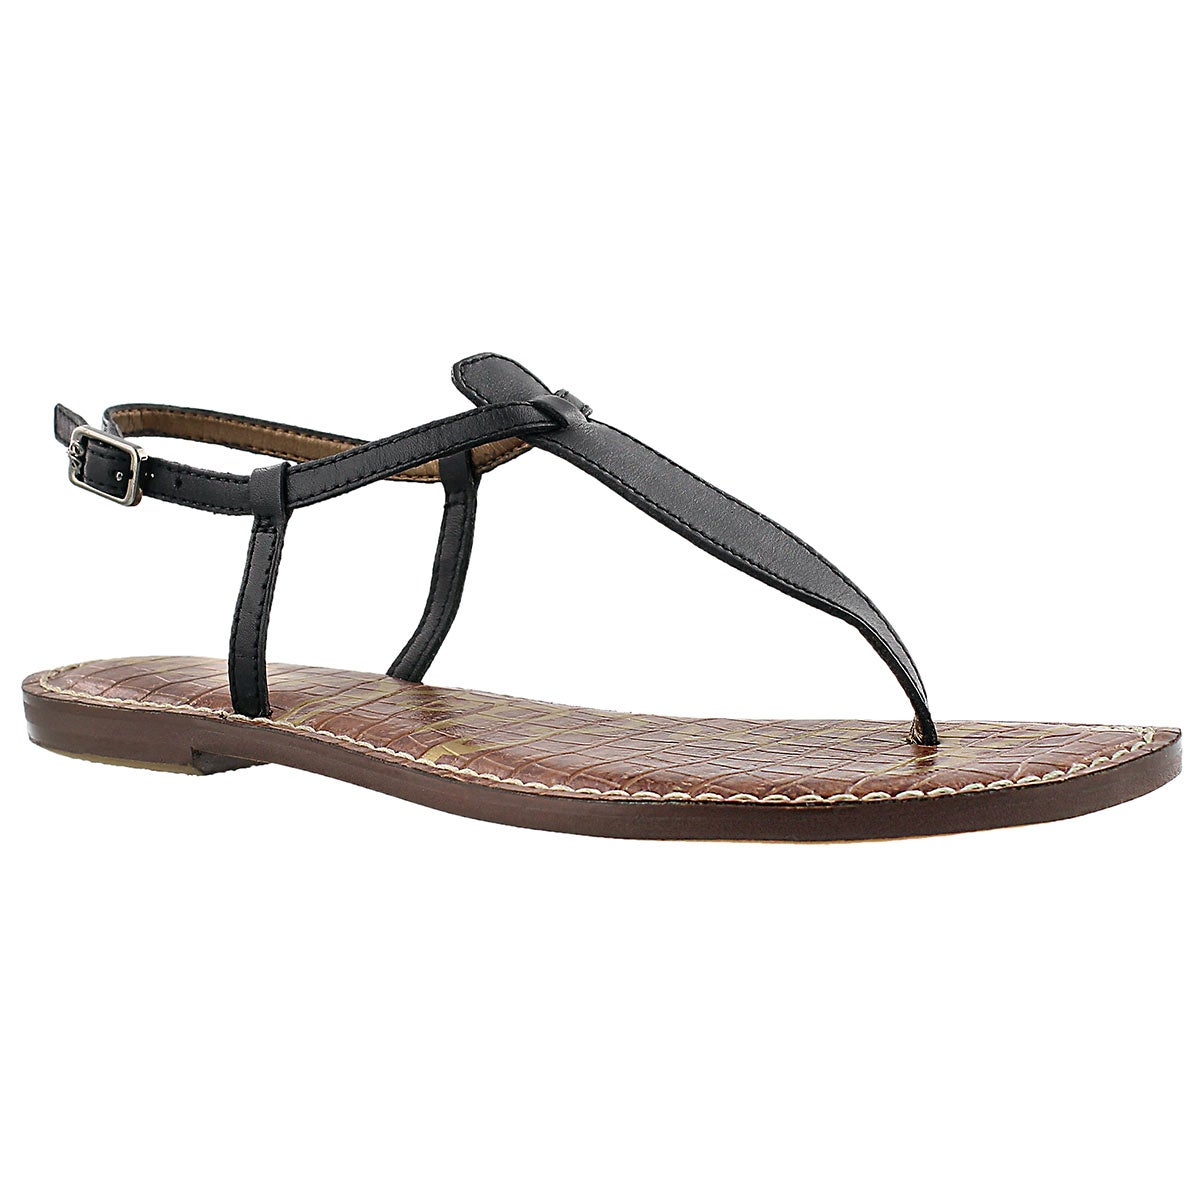 Women's GIGI black t-strap casual sandals